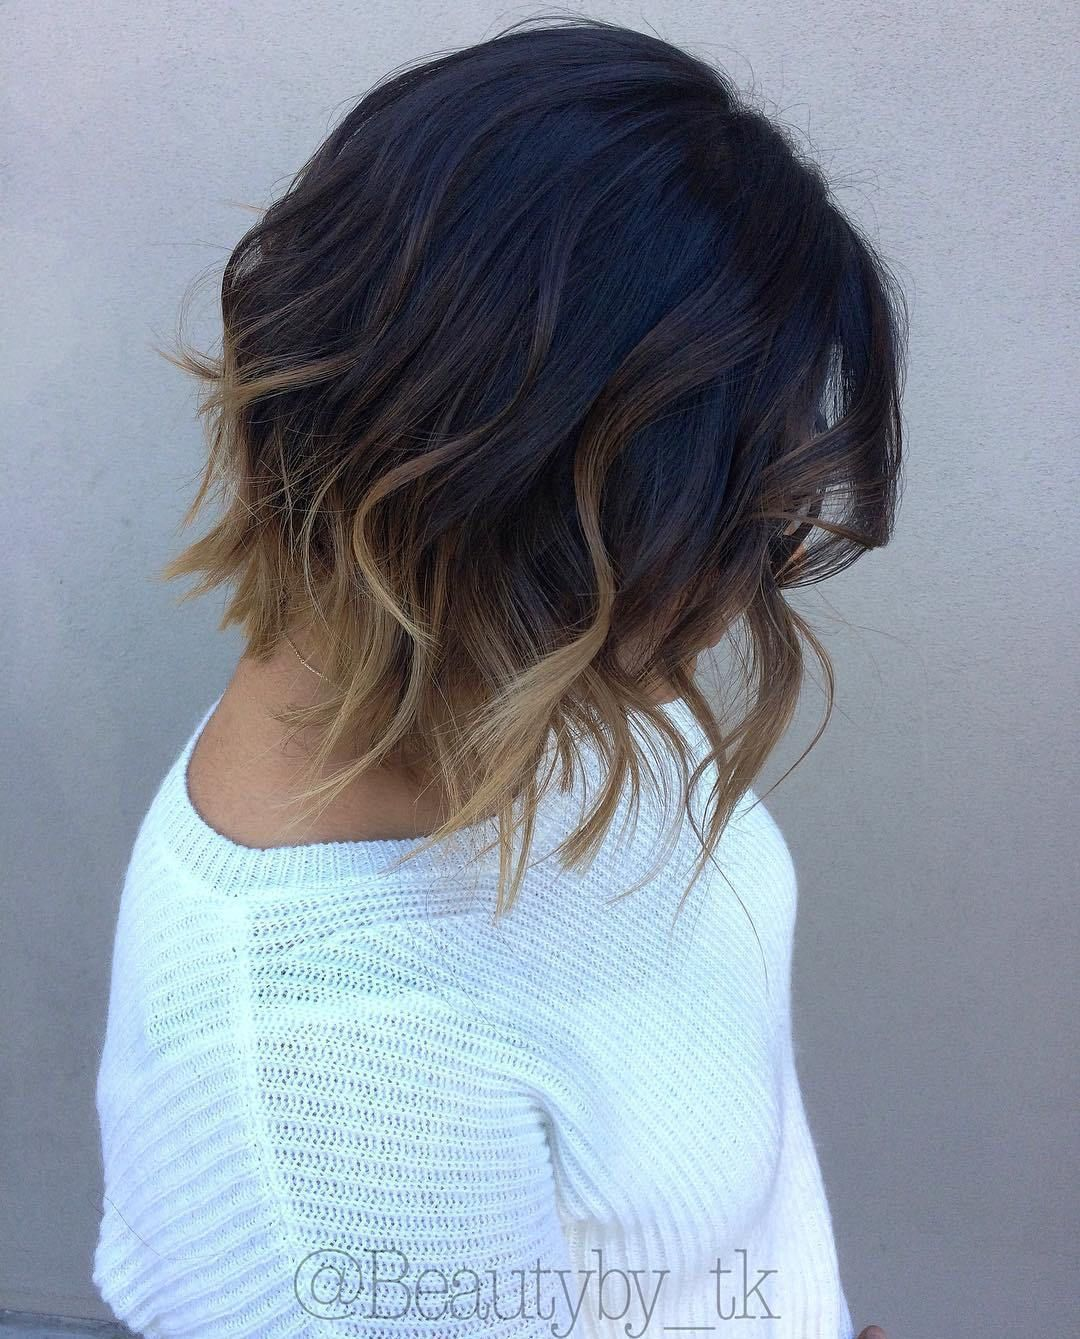 30 Short Ombre Hair Options For Your Cropped Locks In 2020 Short Ombre Hair Short Hair Balayage Short Hair Styles